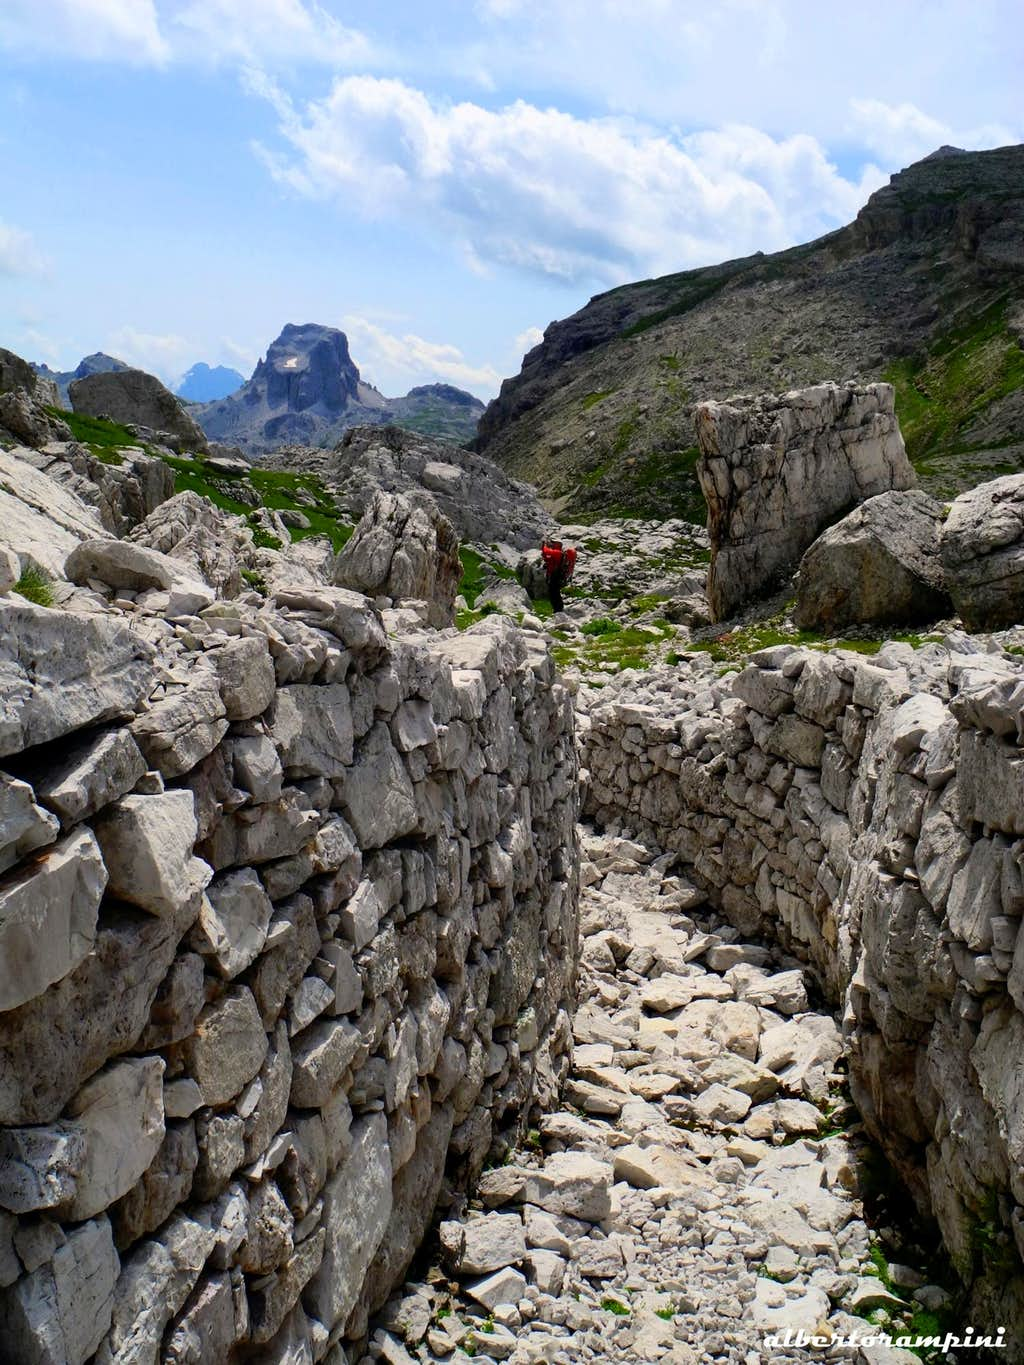 First World War trench along the path to Castelletto